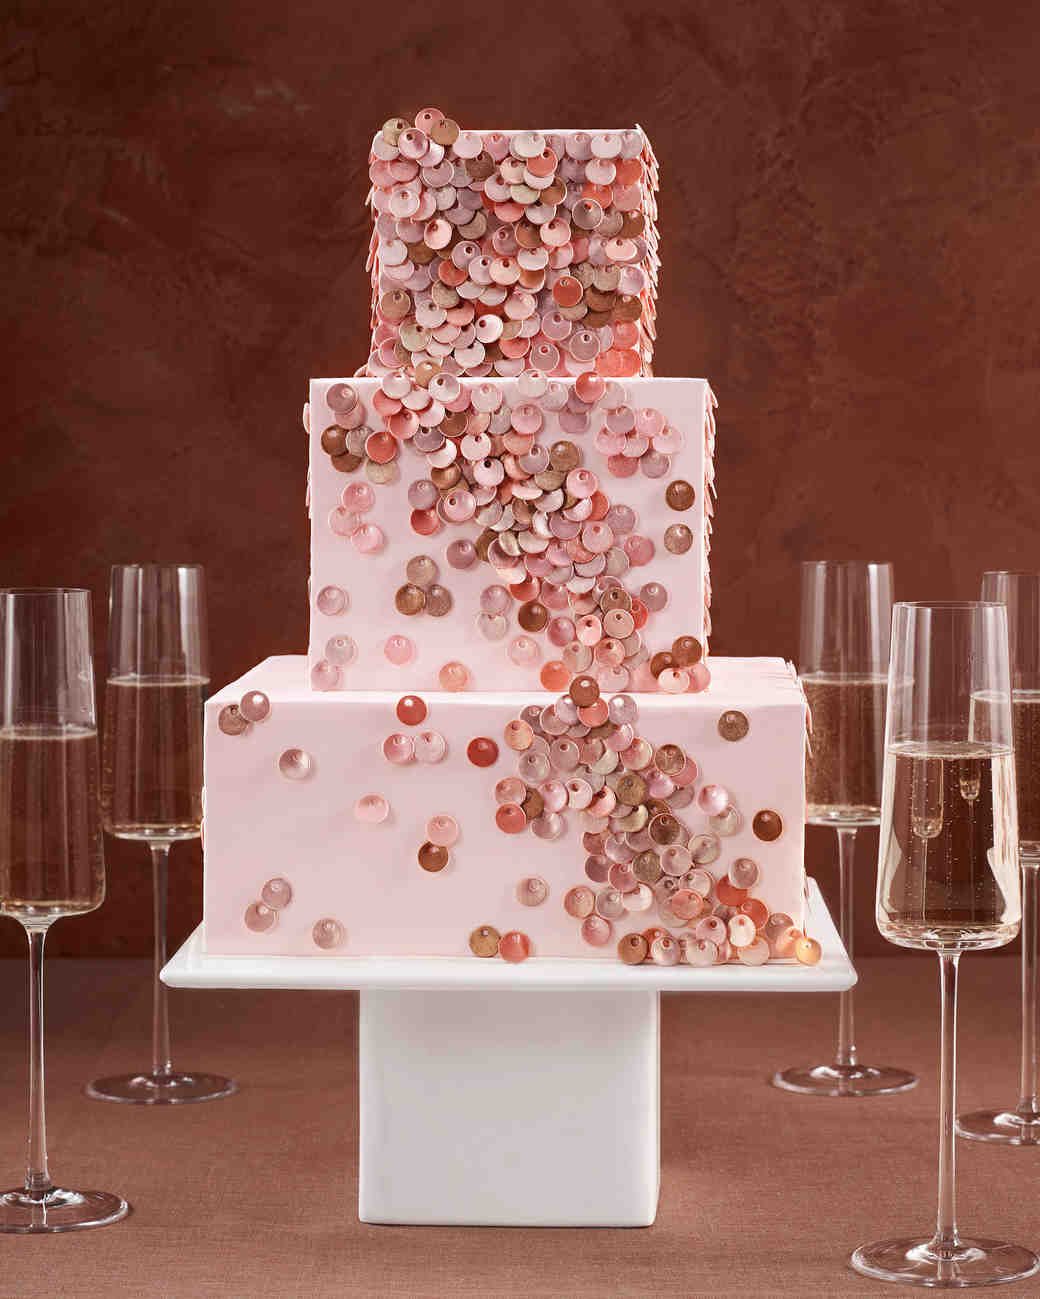 These Fabric-Inspired Wedding Cakes Make for Fashionable Desserts ...